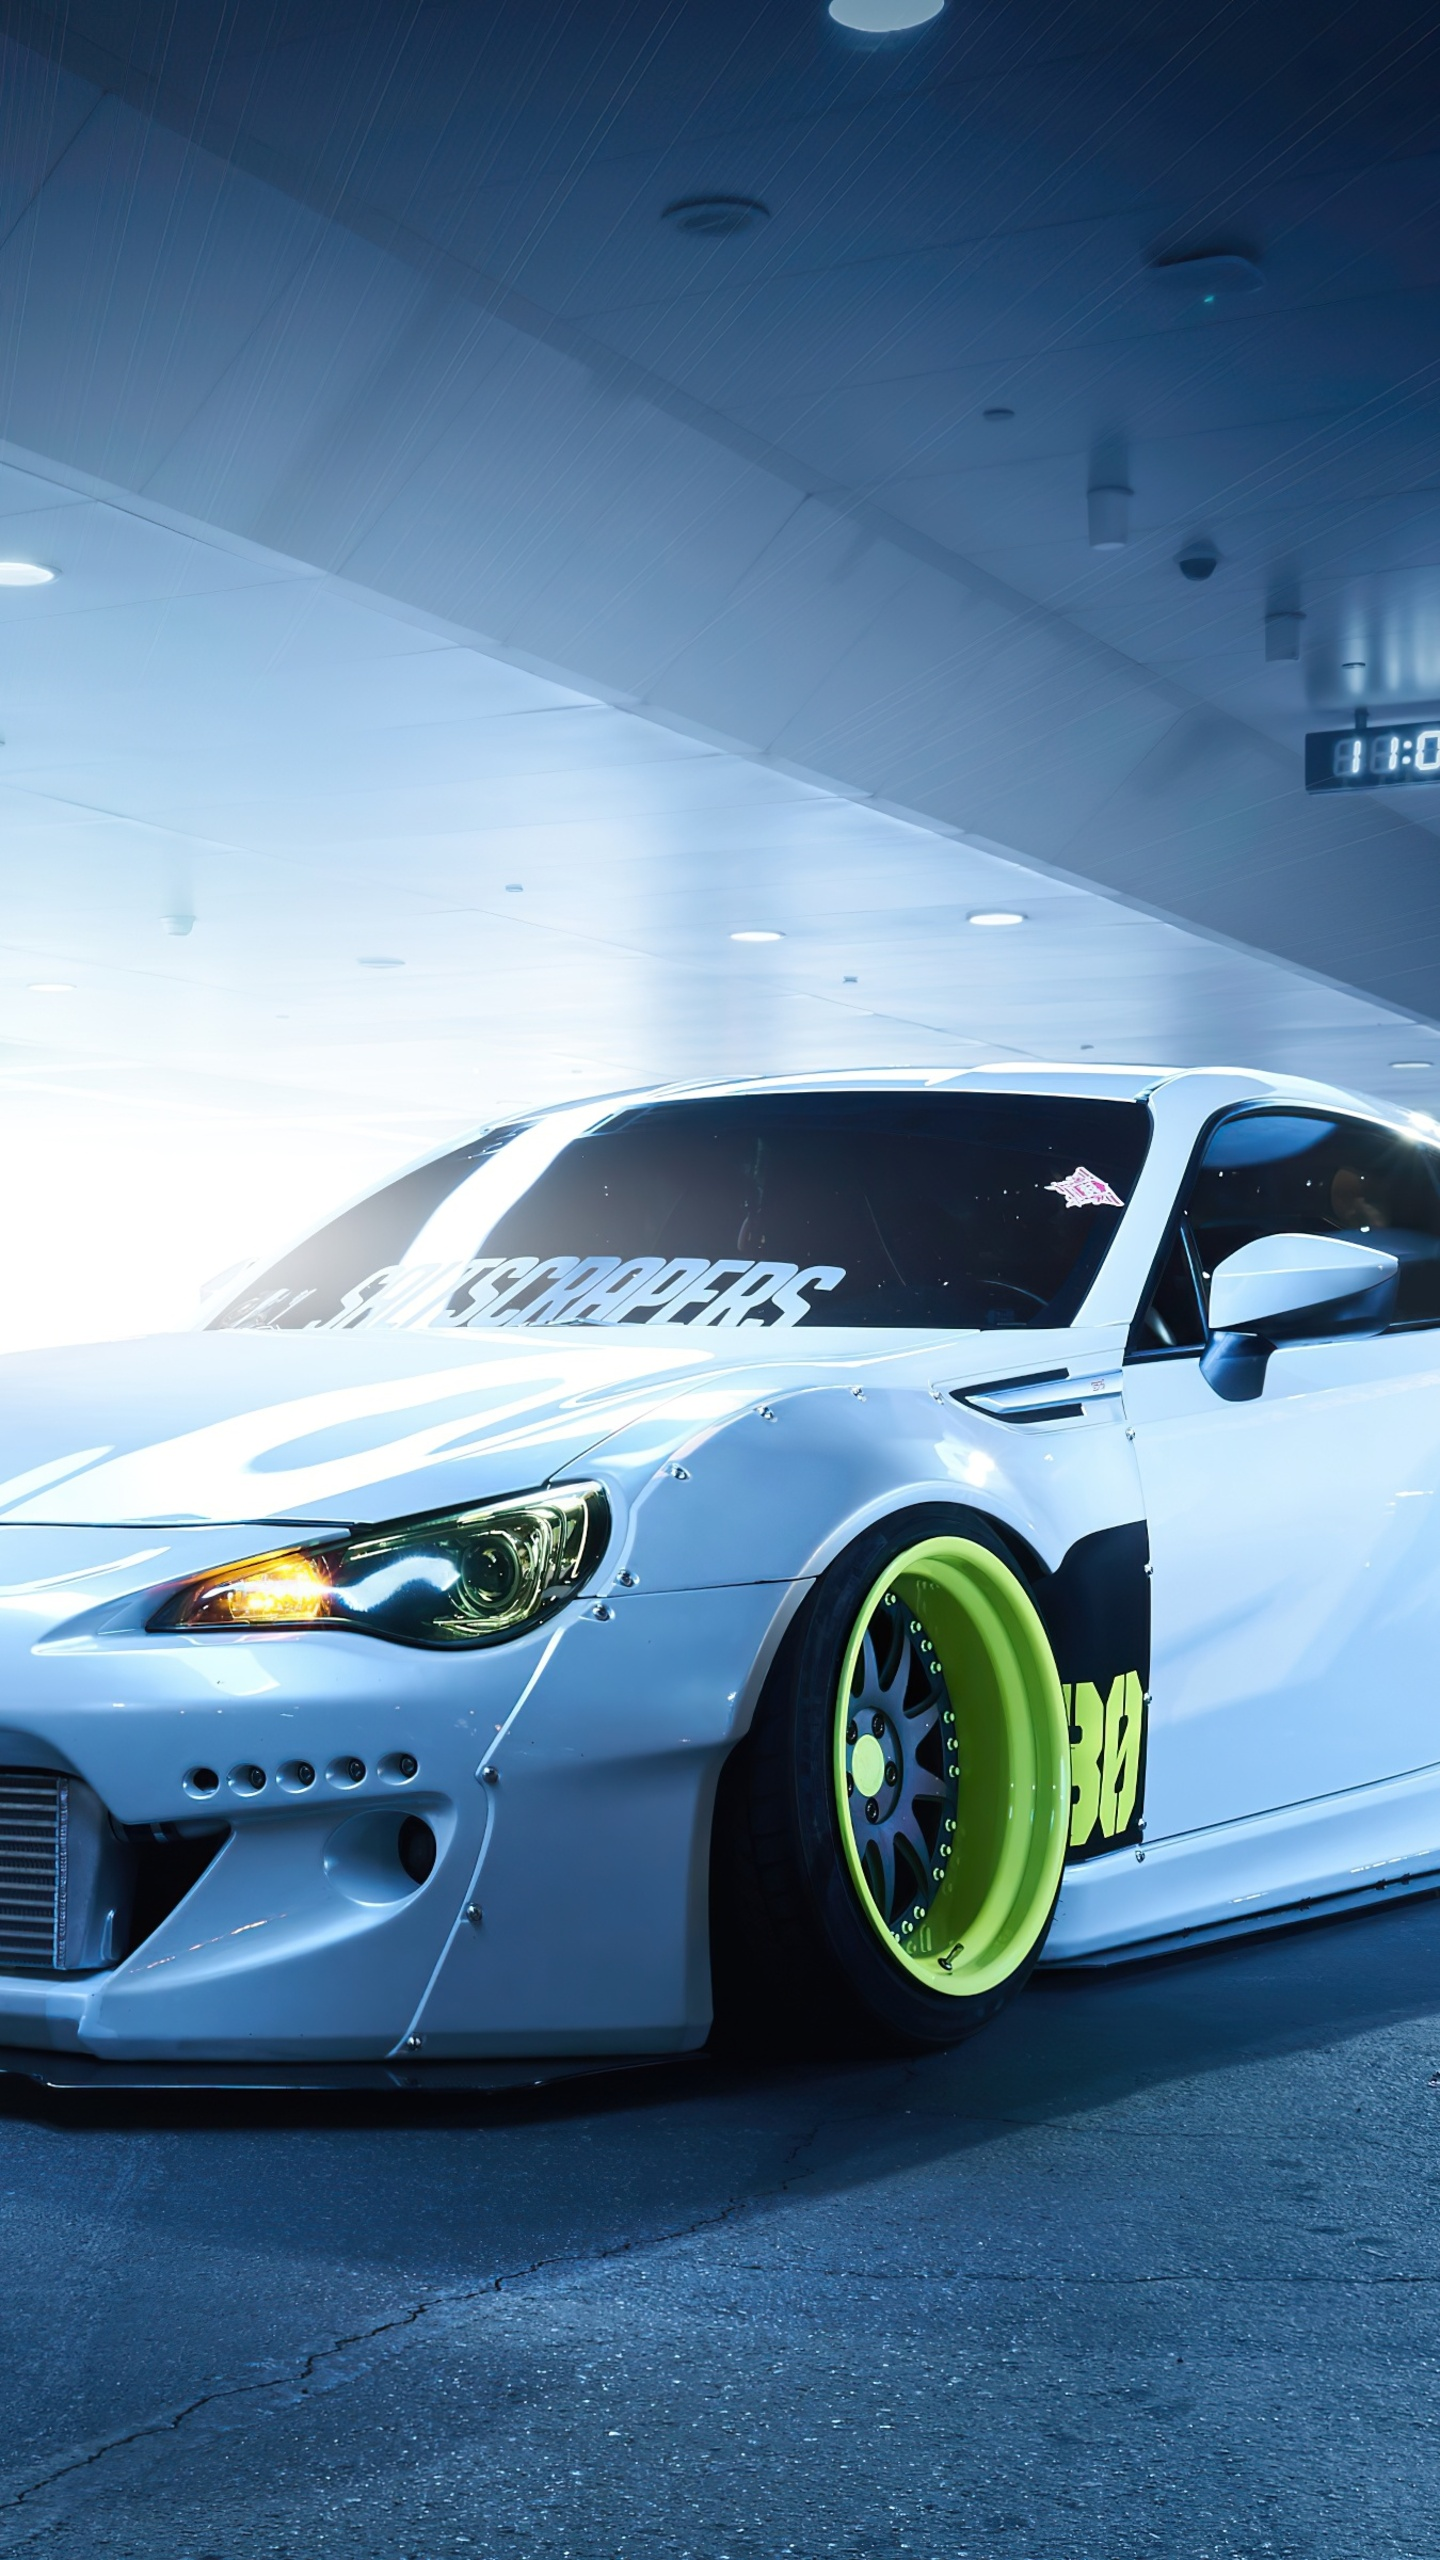 1440x2560 Subaru Brz Parking Loat 4k Samsung Galaxy S6 S7 Google Pixel Xl Nexus 6 6p Lg G5 Hd 4k Wallpapers Images Backgrounds Photos And Pictures